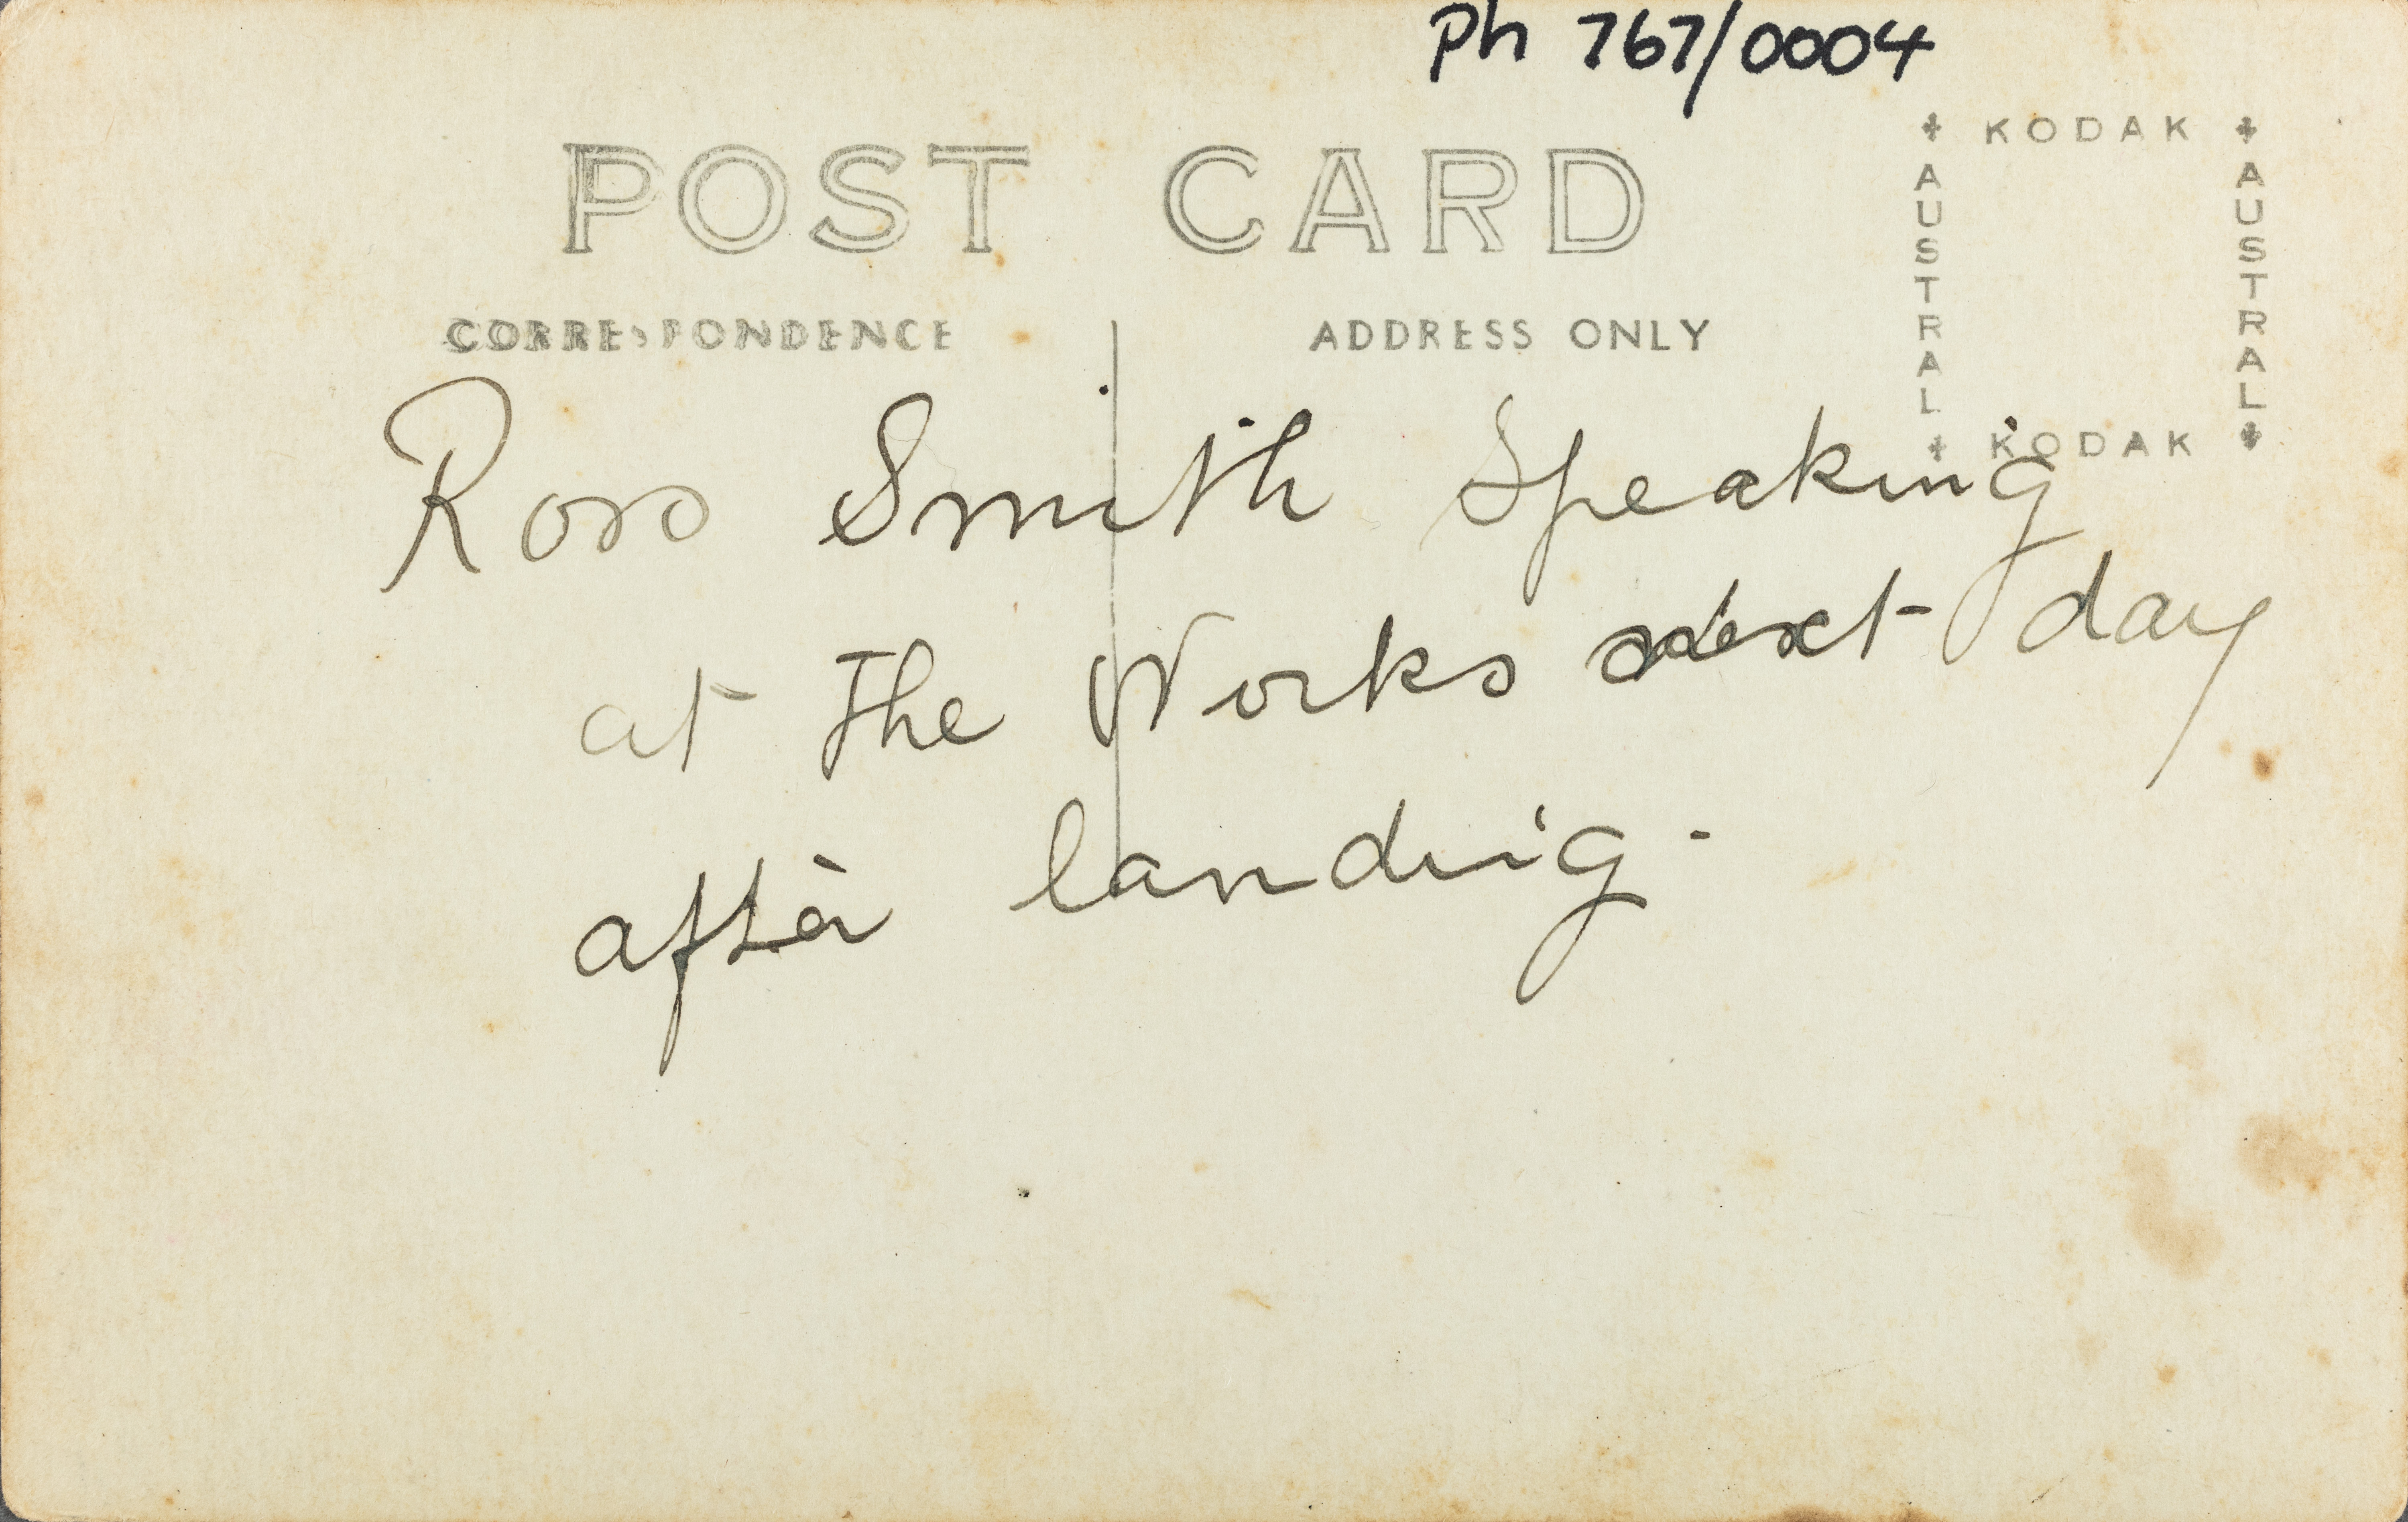 Text on reverse: Ross Smith speaking at the Works next day after landing.